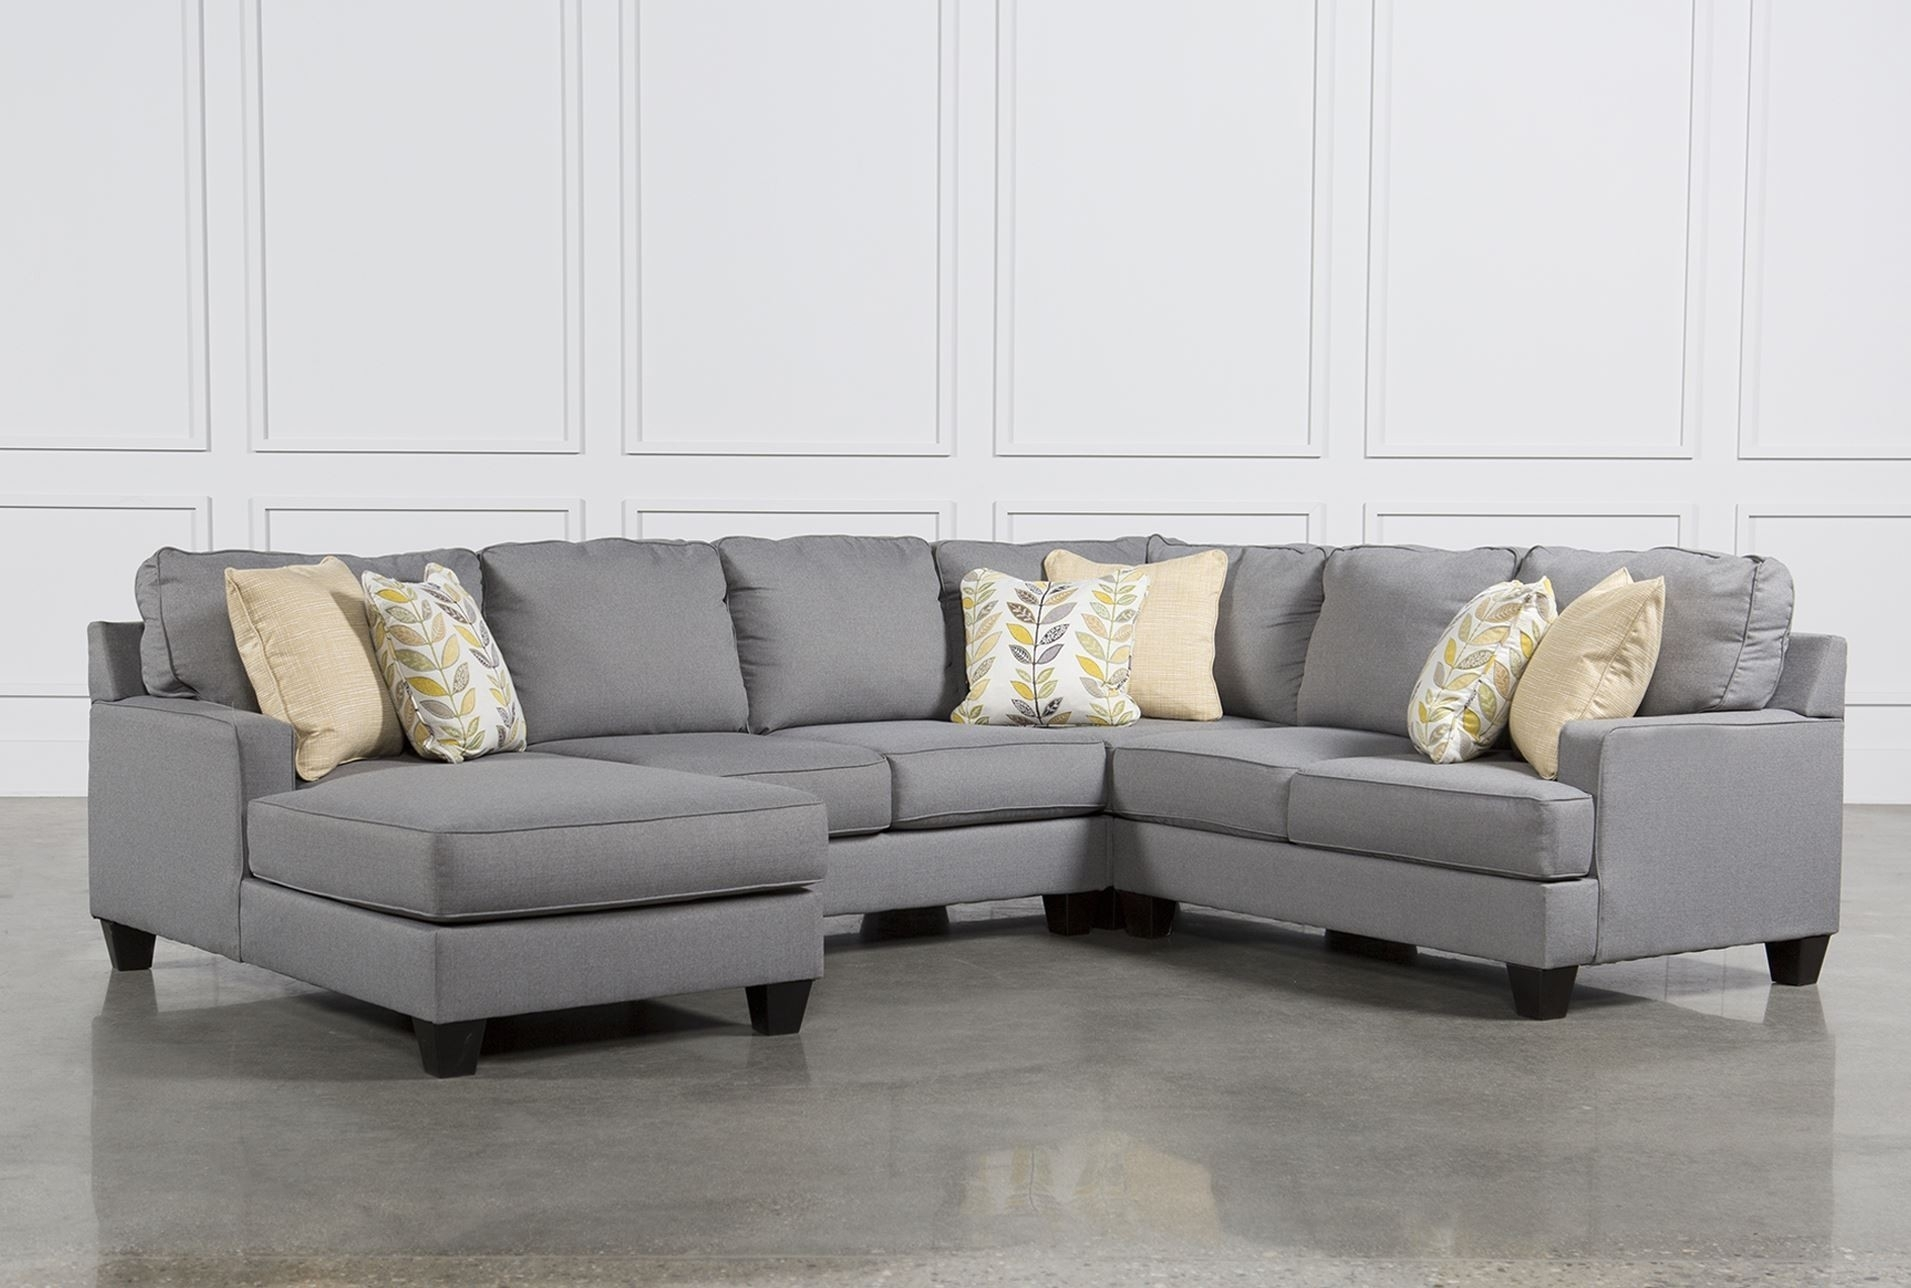 Living Spaces Sectional Sofas – Implantologiabogota (Image 19 of 25)